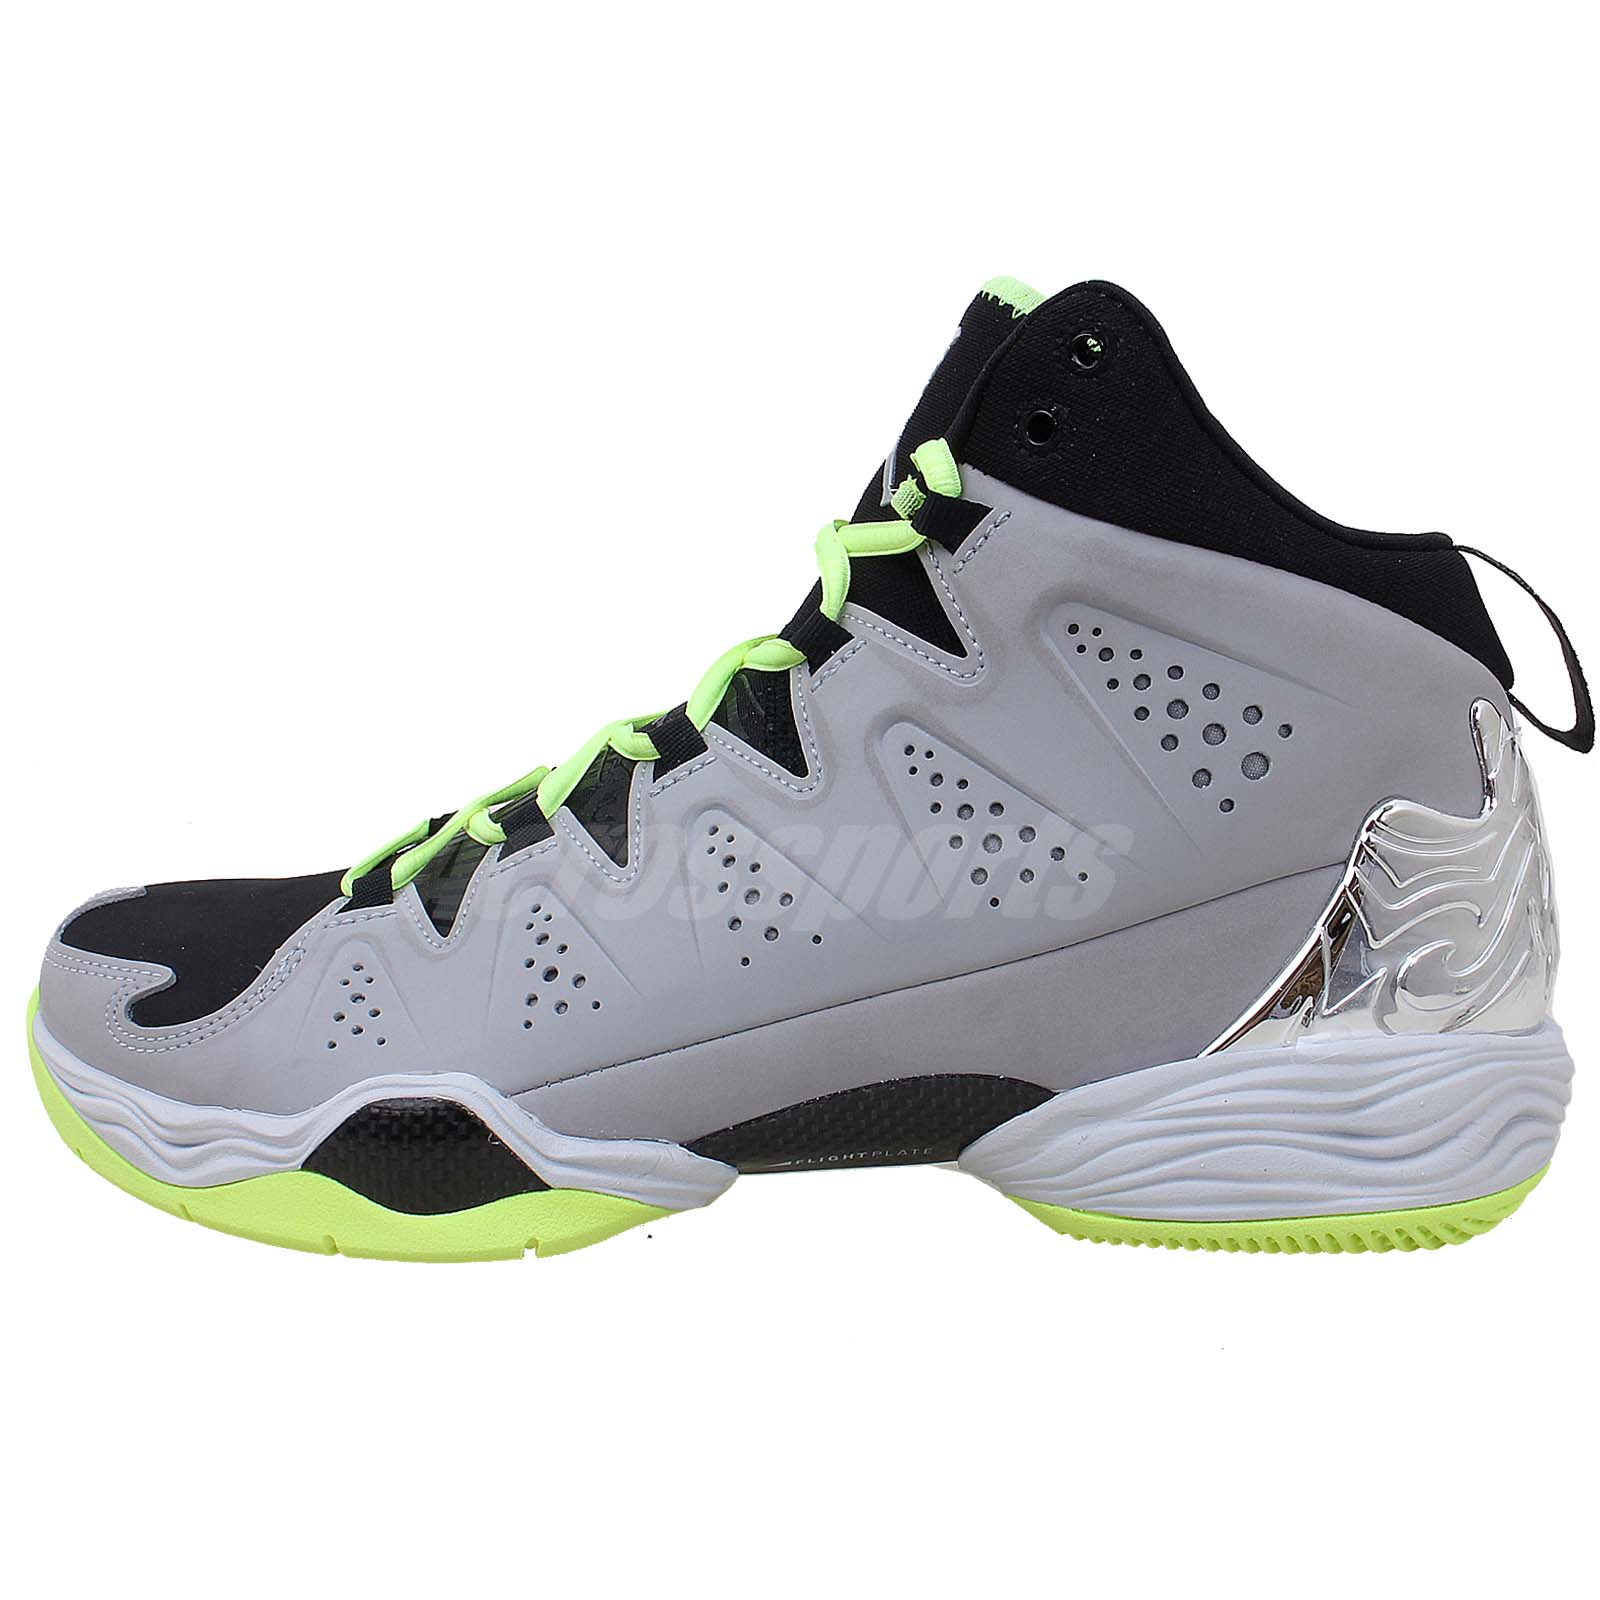 Nike Jordan Melo M10 Carmelo Anthony Mens Basketball Shoes ...